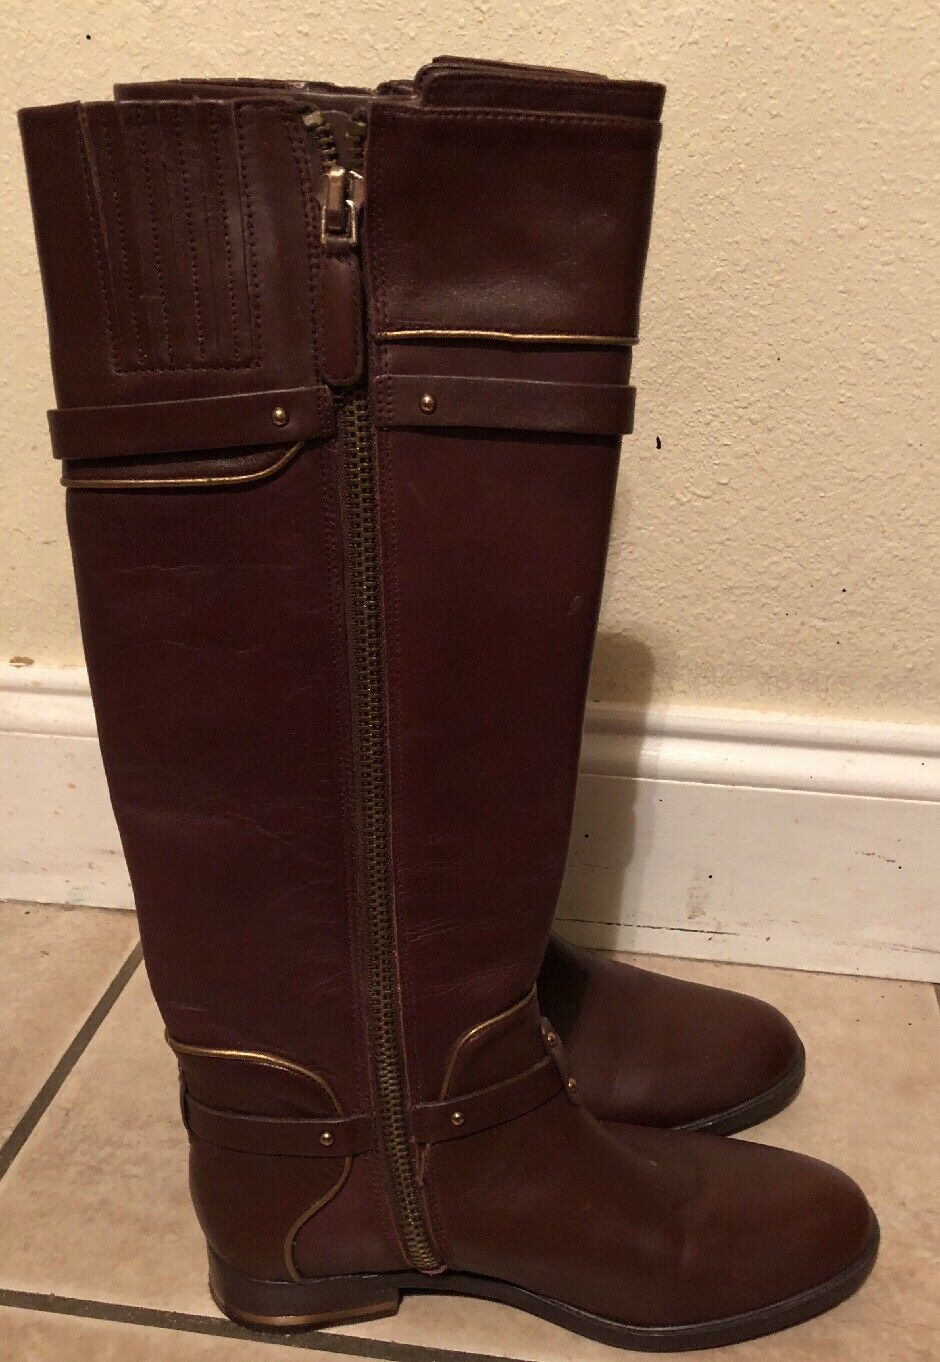 BCBGMaxazria Franz Leather Riding Boots Brown Size 6.5 MSRP 395 new